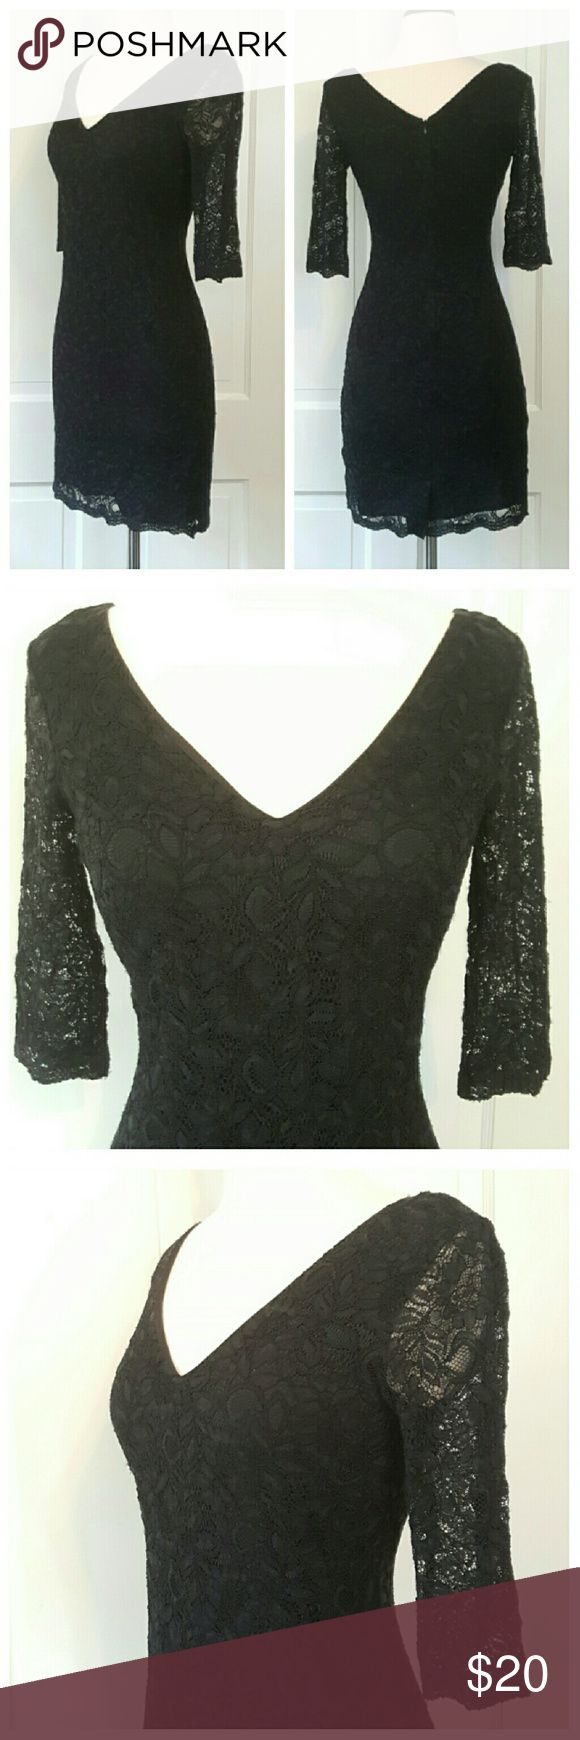 Banana Republic Navy Lace Dress Dress has lace overlay on body and sheer lace on 3/4 length sleeves. V back and front, back zipper. Some of the lower lace area is less defined than others, see last picture. Dress appears to be black in pictures, but is a elegant dark navy. Banana Republic Dresses